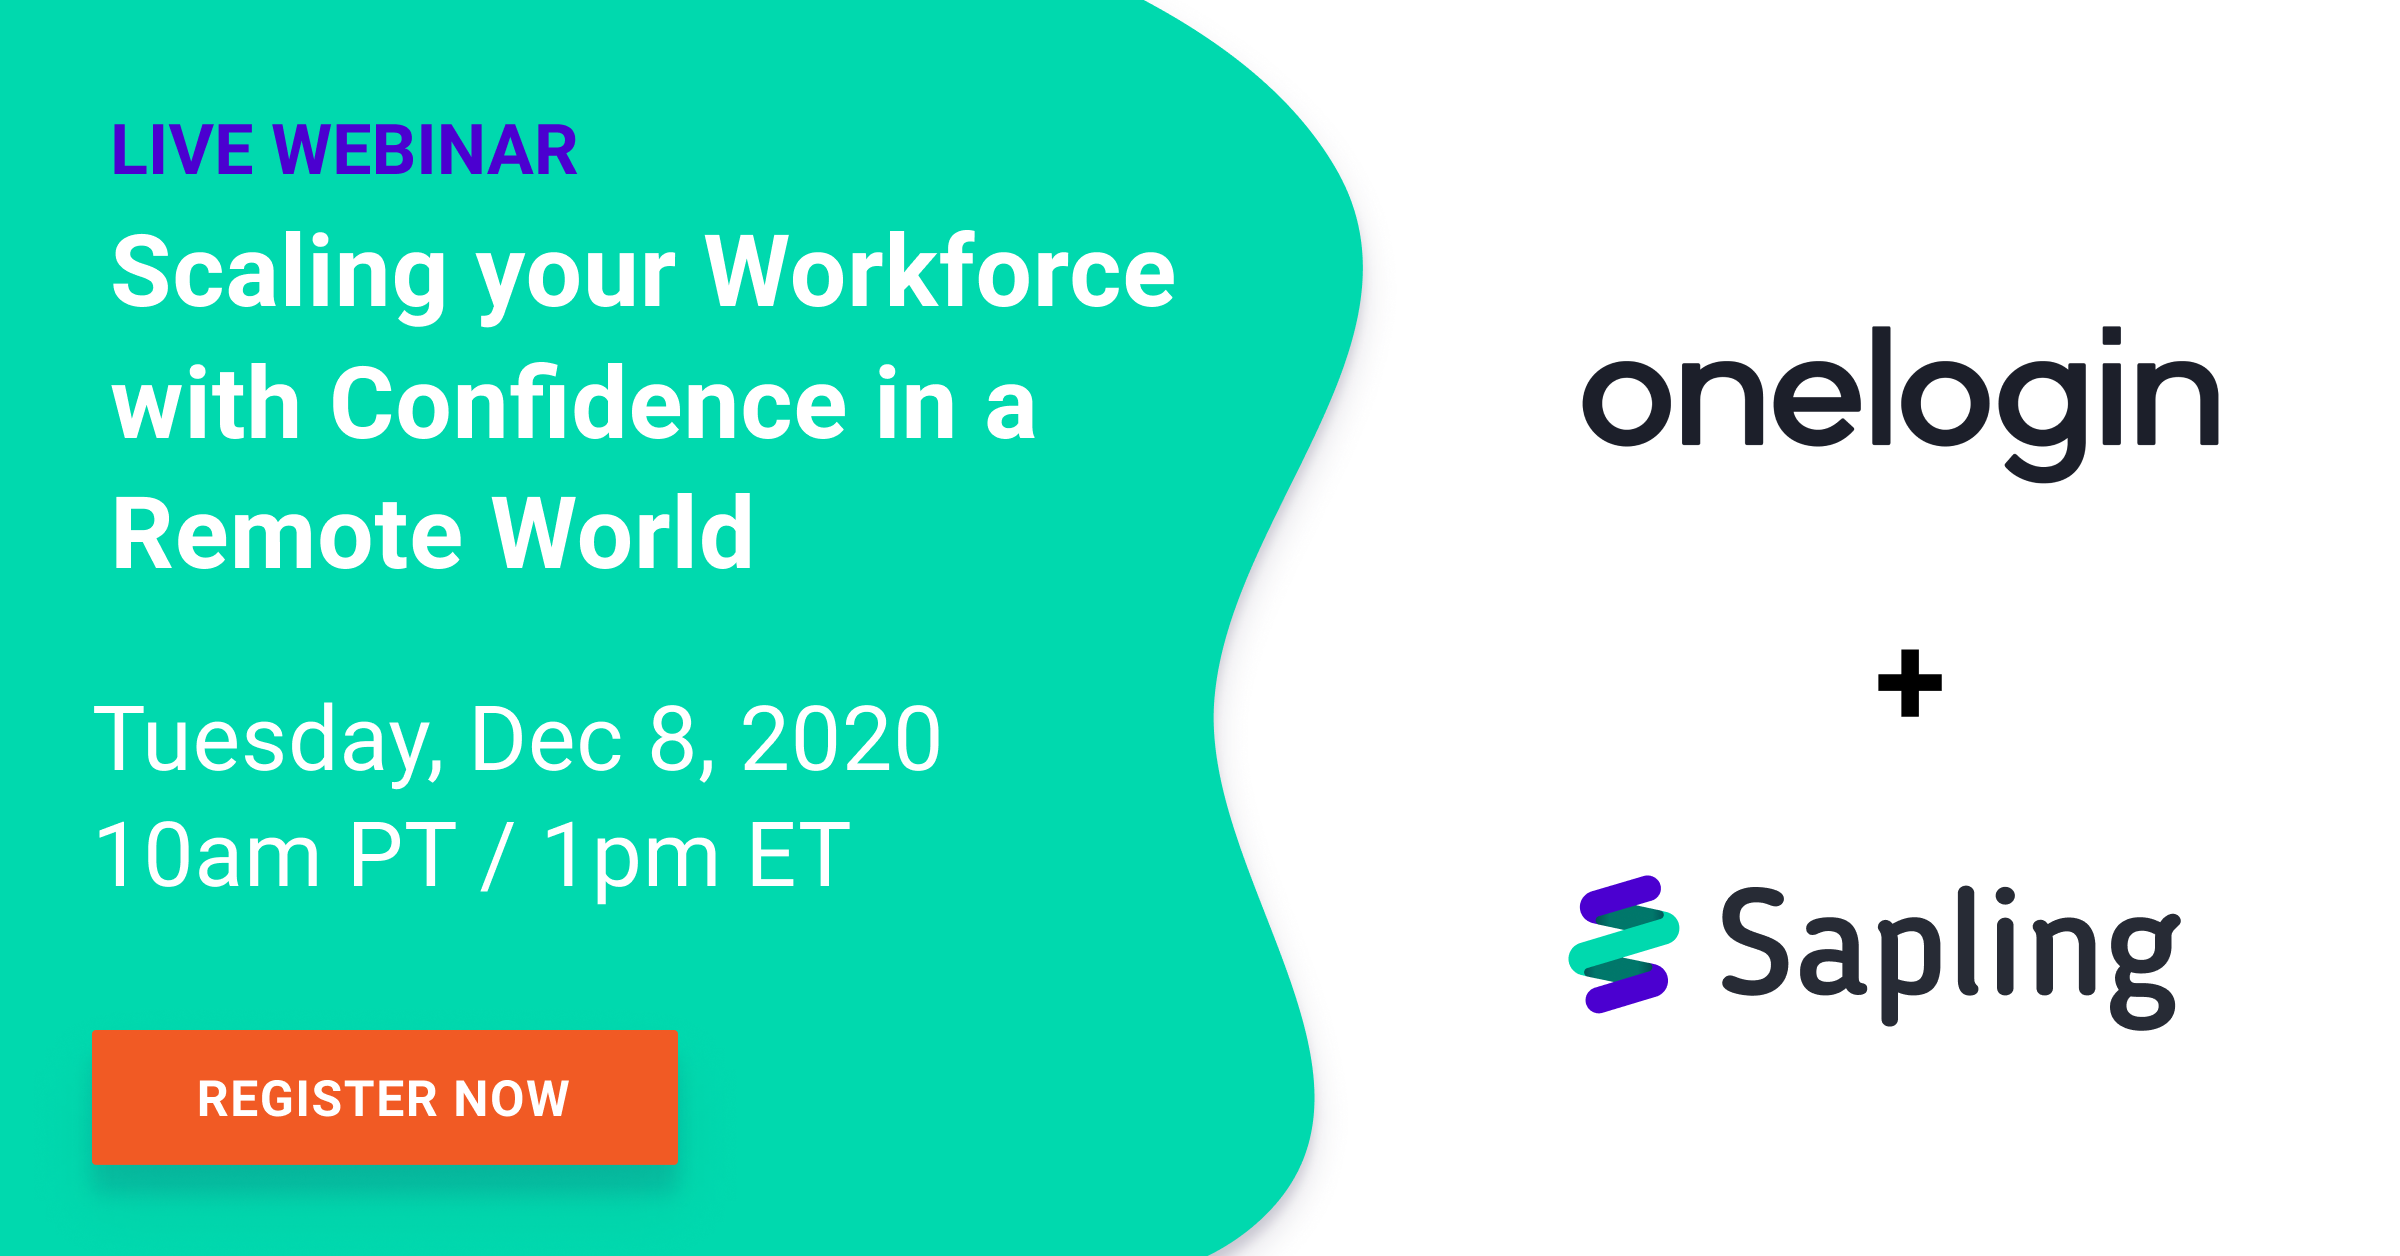 Scaling your Workforce with Confidence in a Remote World